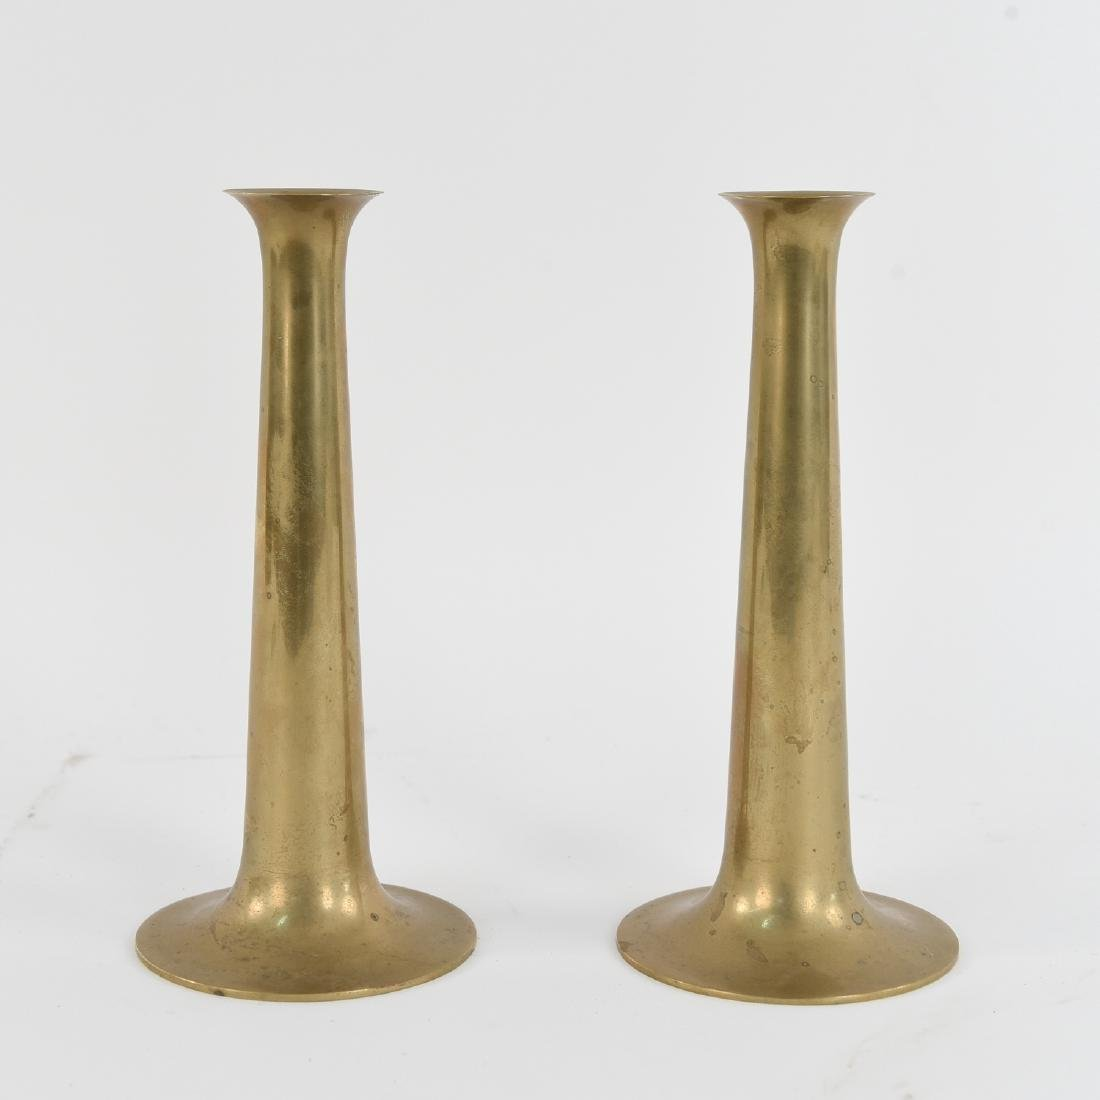 PAIR OF TORBEN ORSKOV BRASS TRUMPET CANDLESTICKS